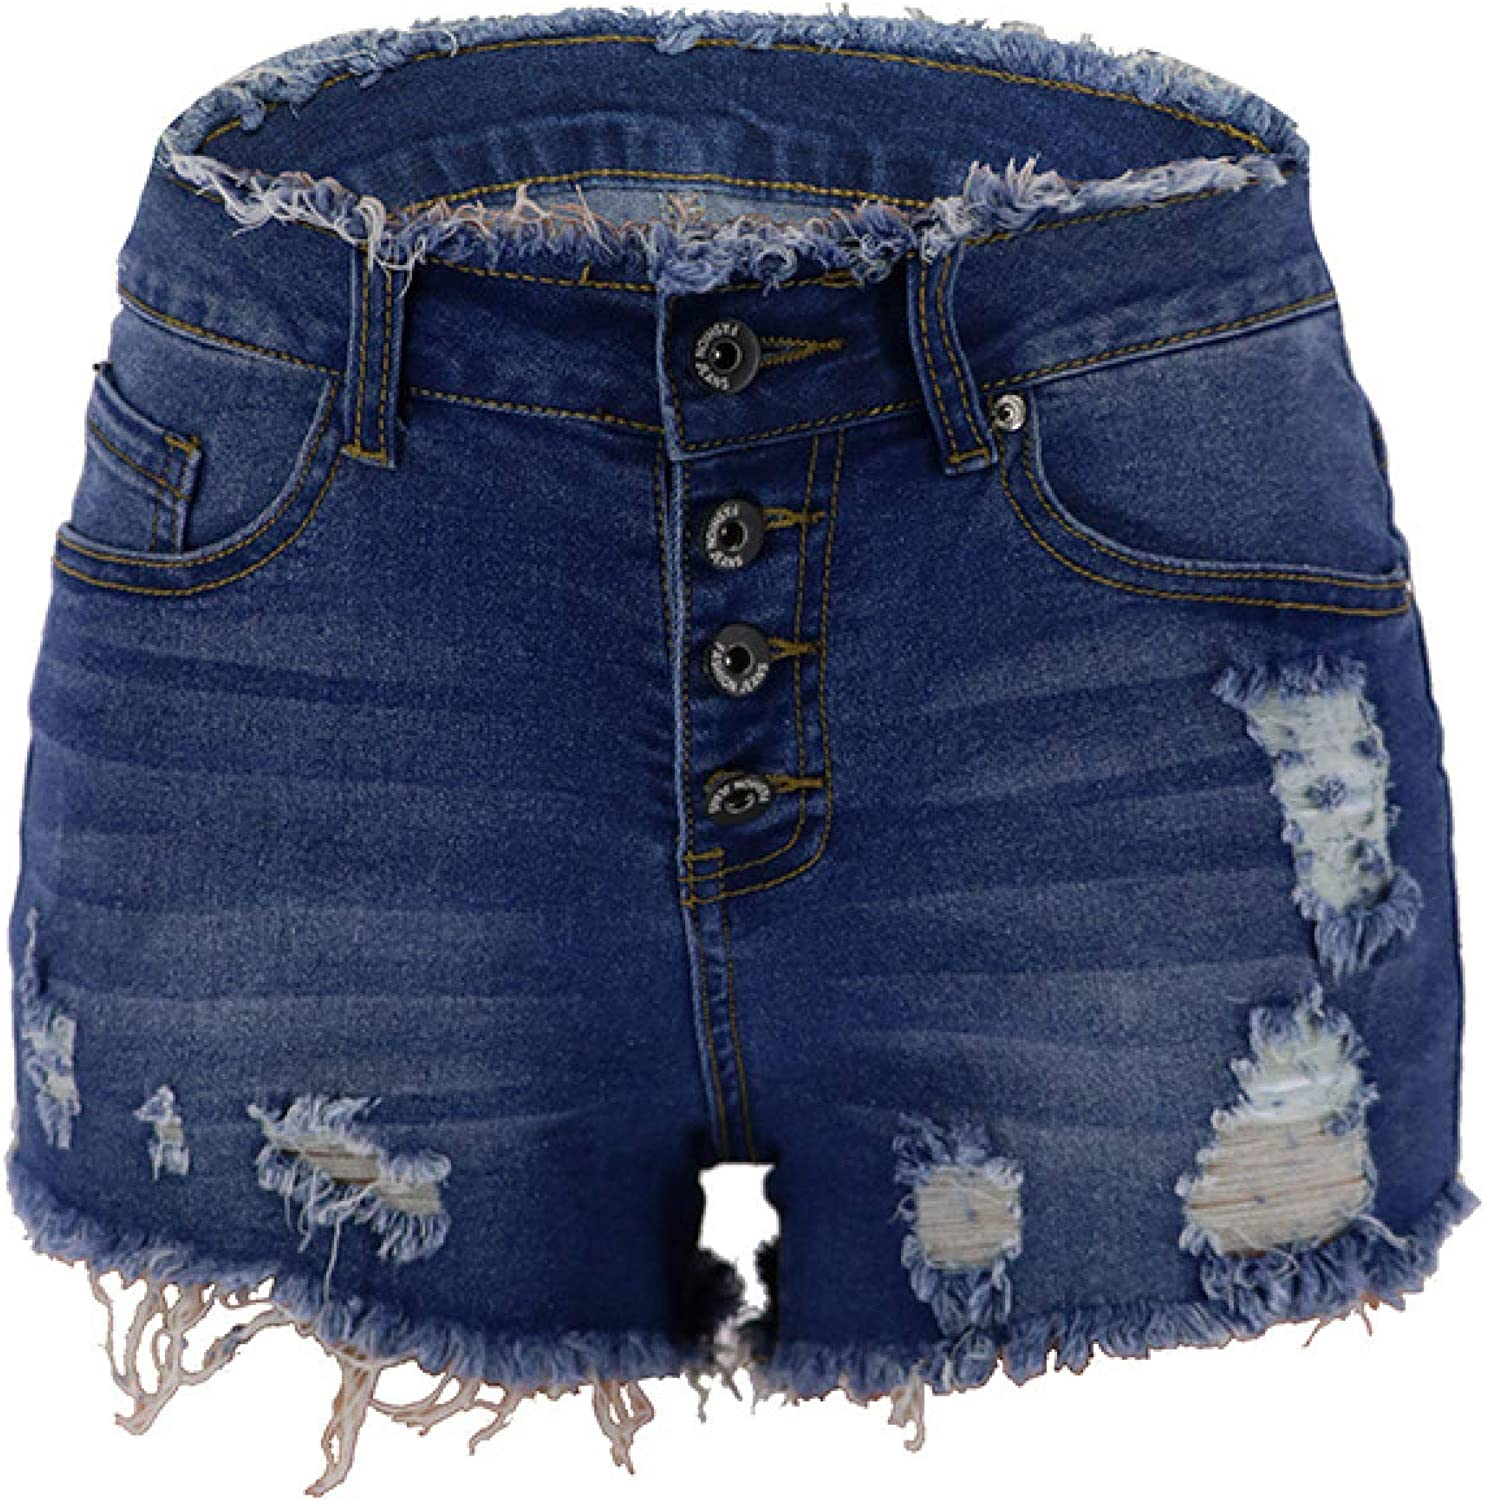 Ladies Spring and Summer New Ripped Denim Shorts Fashion Solid Color Raw Edge